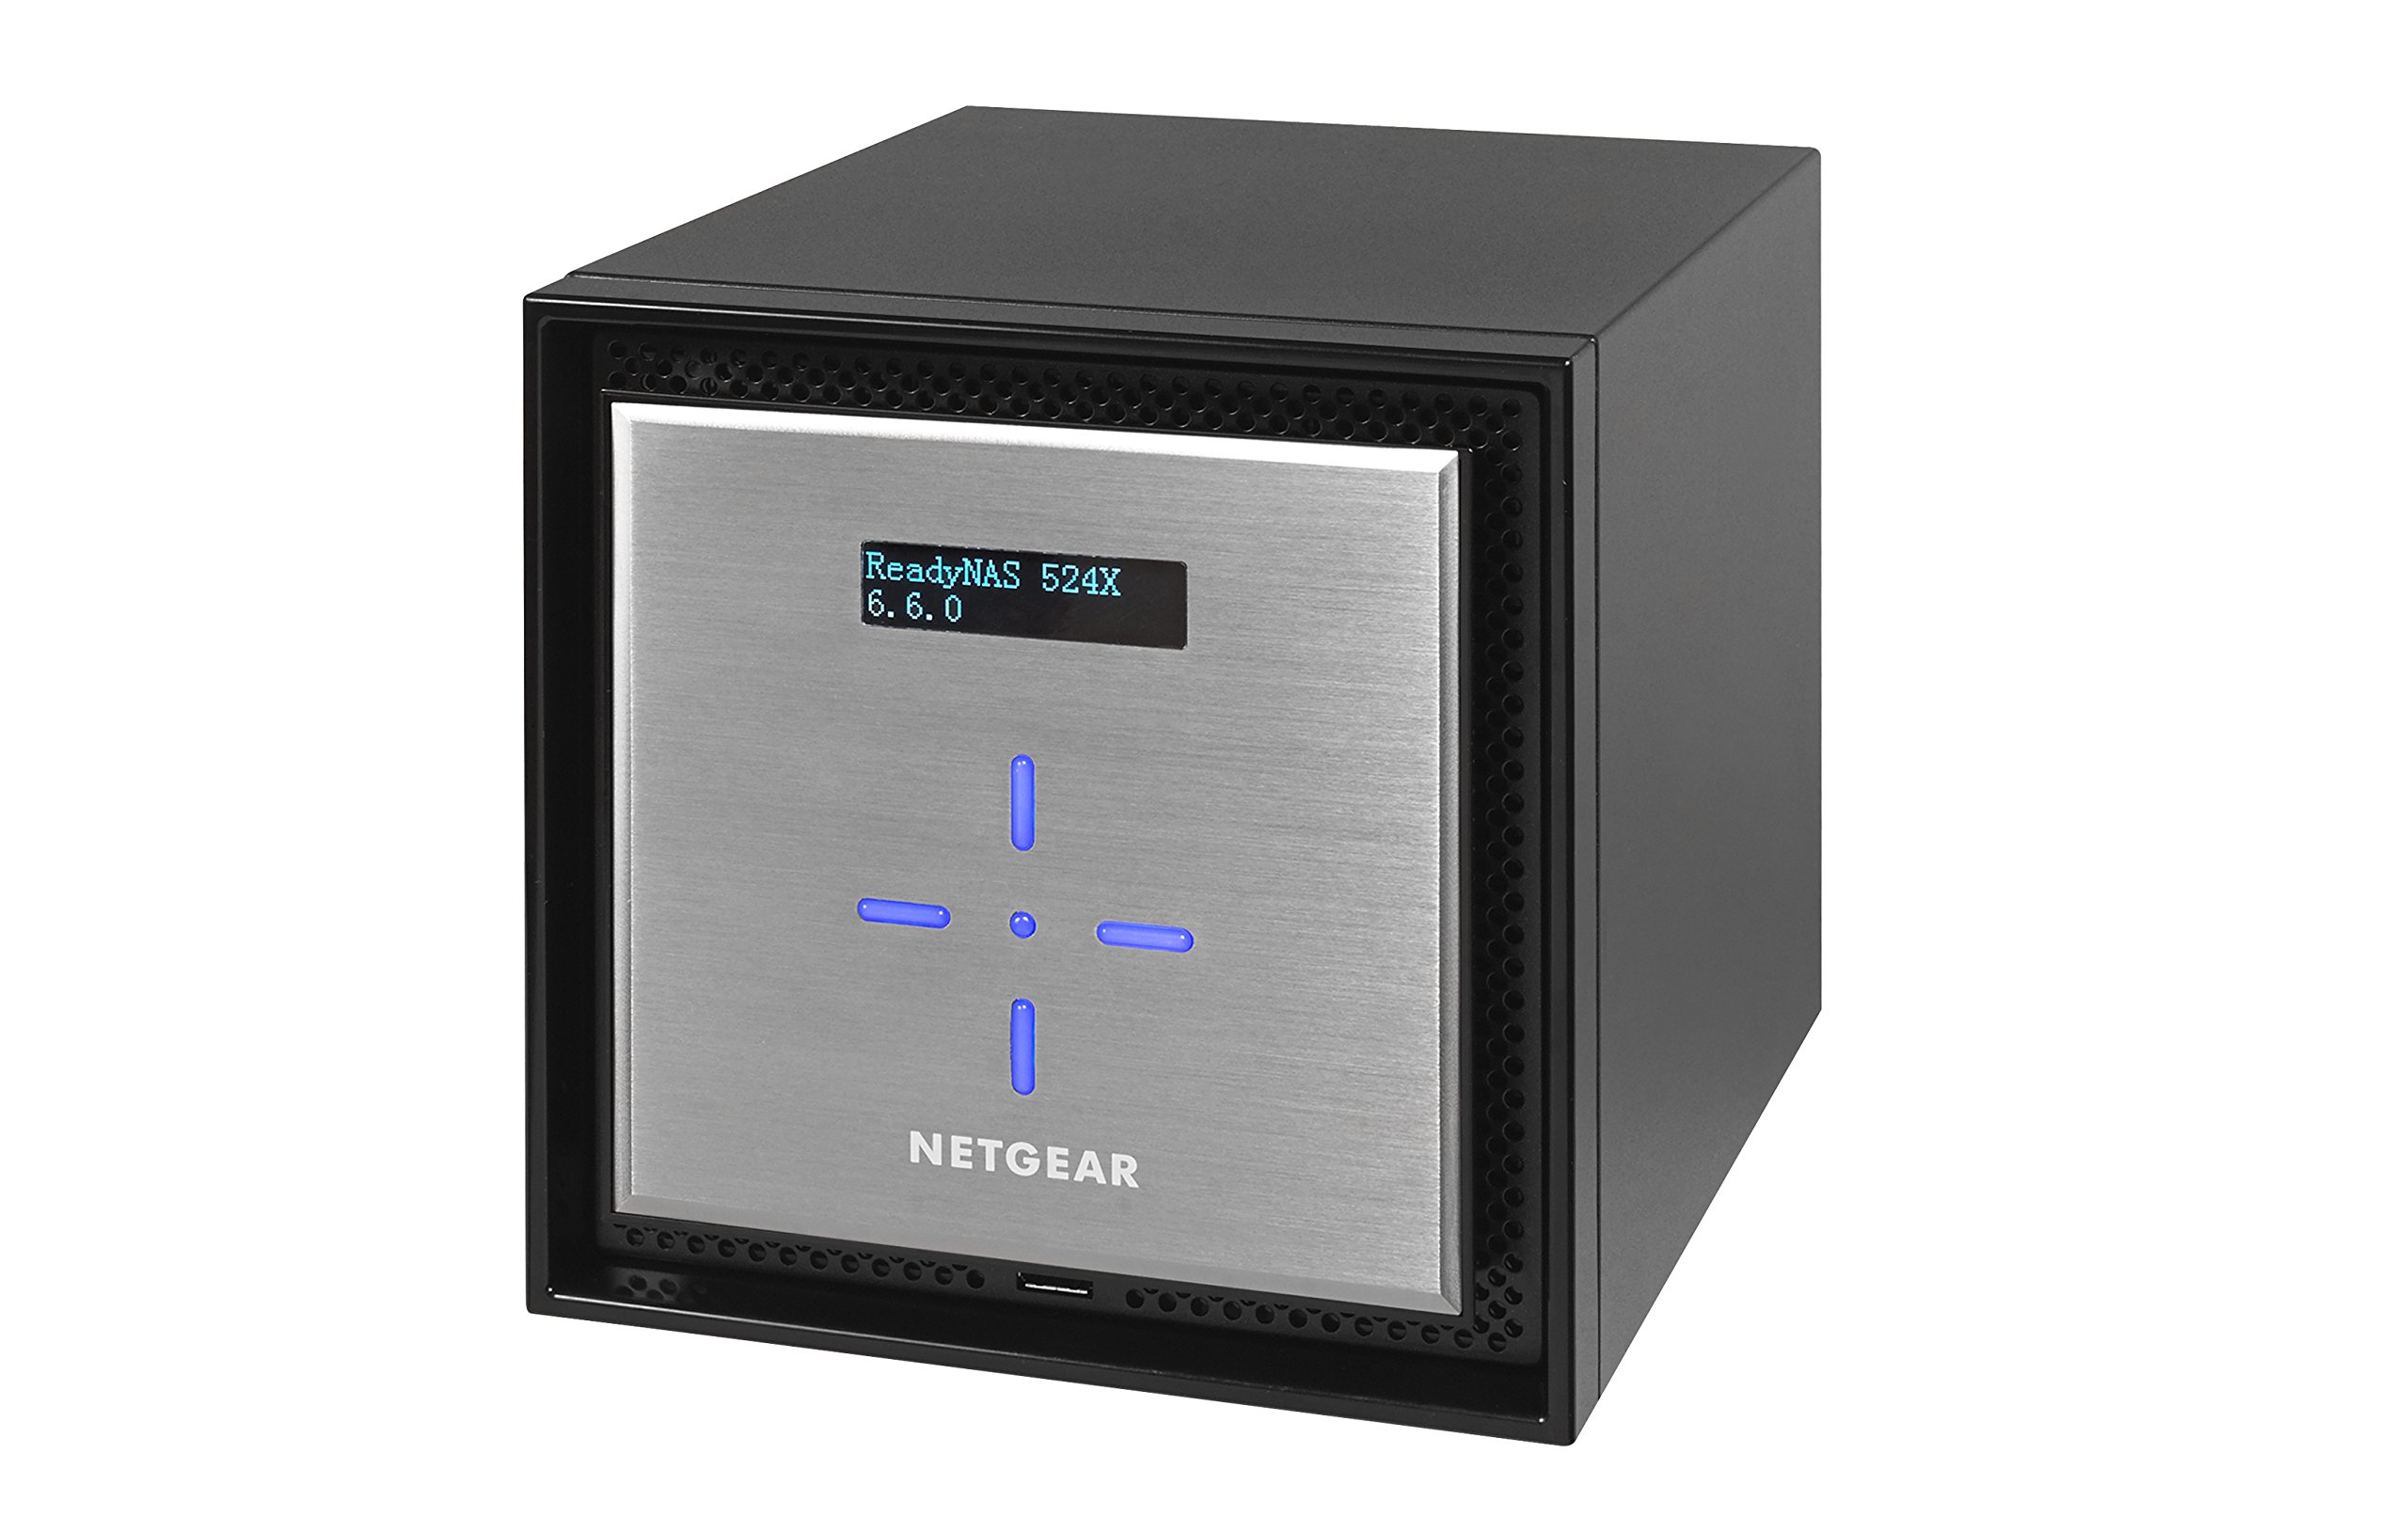 NETGEAR ReadyNAS RN524X00 4 Bay Diskless Premium Performance NAS, 40TB Capacity Network Attached Storage, Intel 2.2GHz Dual Core Processor, 4GB RAM 2 PREMIUM PERFORMANCE - Up to 20 gigabit per second data access, powered by a server processor 10G CONNECTIVITY - Utilize your 10G infrastructure for fast data sharing and backup throughput HIGH-PERFORMANCE - Get 2x faster business application processing with the latest 64-bit technology